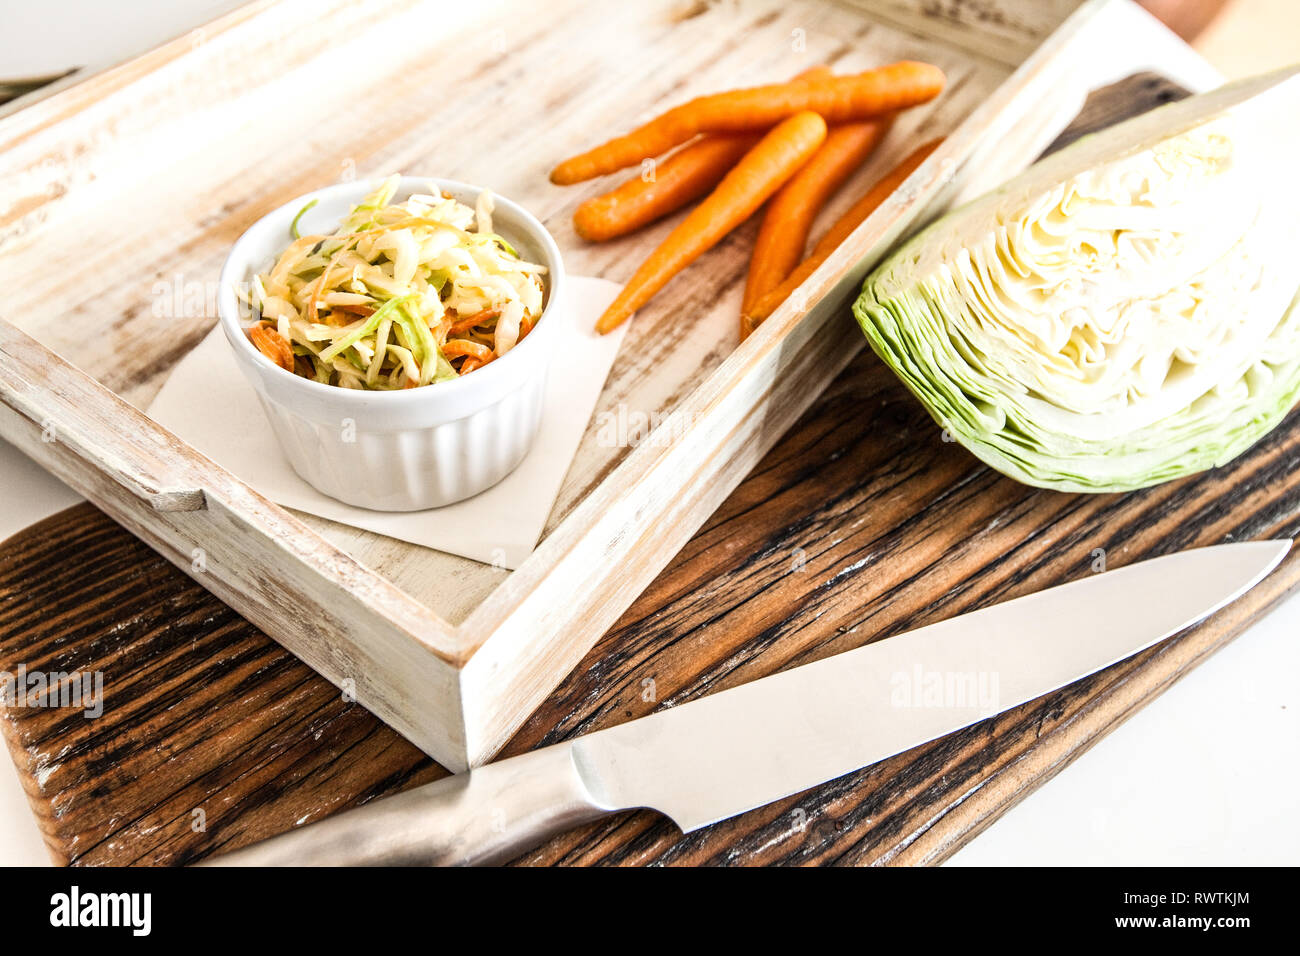 Side view of bowl filled with coleslaw isolated on wood background Stock Photo